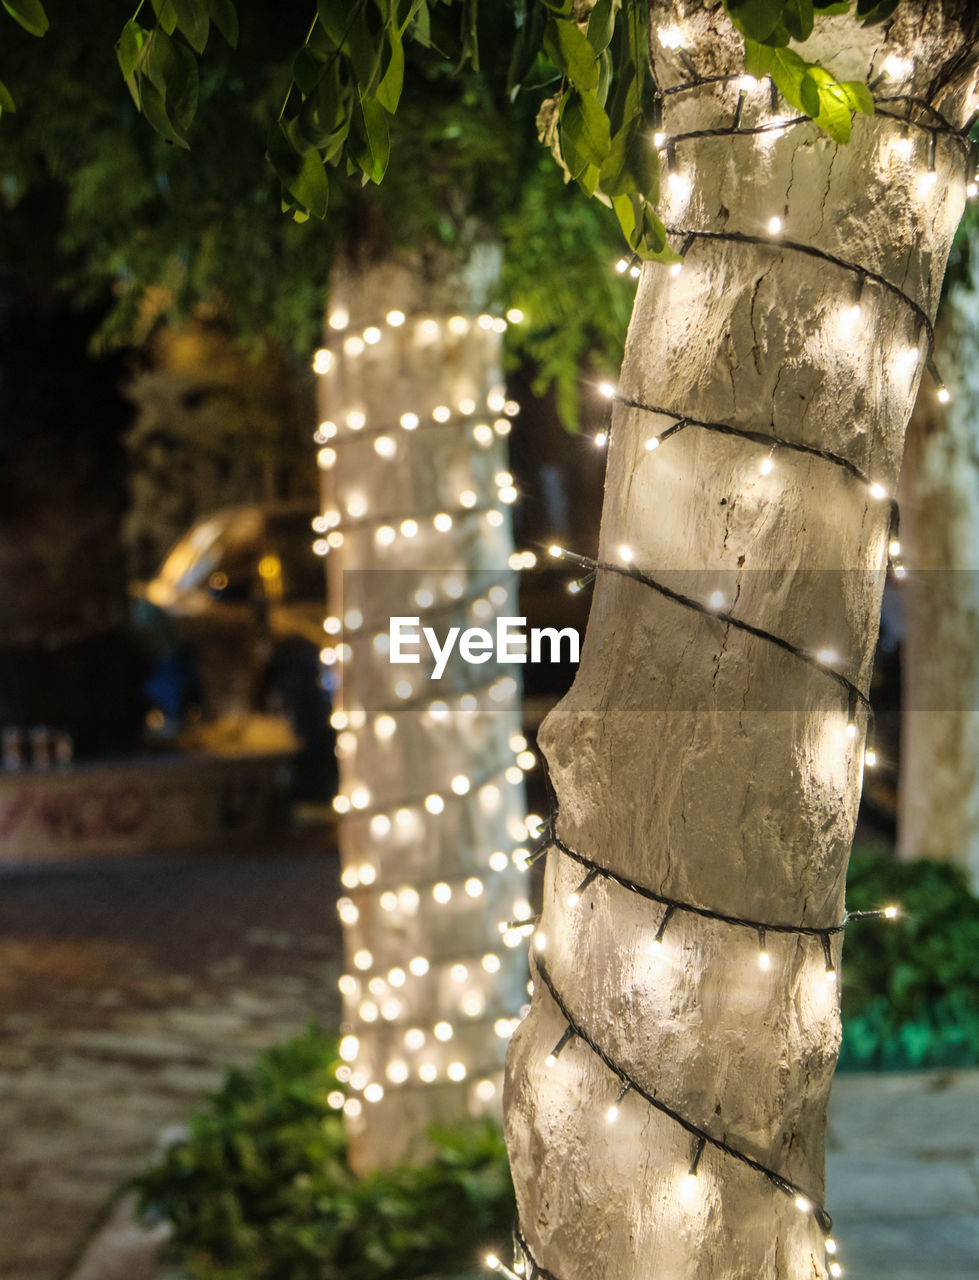 focus on foreground, plant, no people, tree, close-up, day, nature, outdoors, lighting equipment, decoration, tree trunk, trunk, growth, sunlight, illuminated, pattern, metal, creativity, park, bamboo - plant